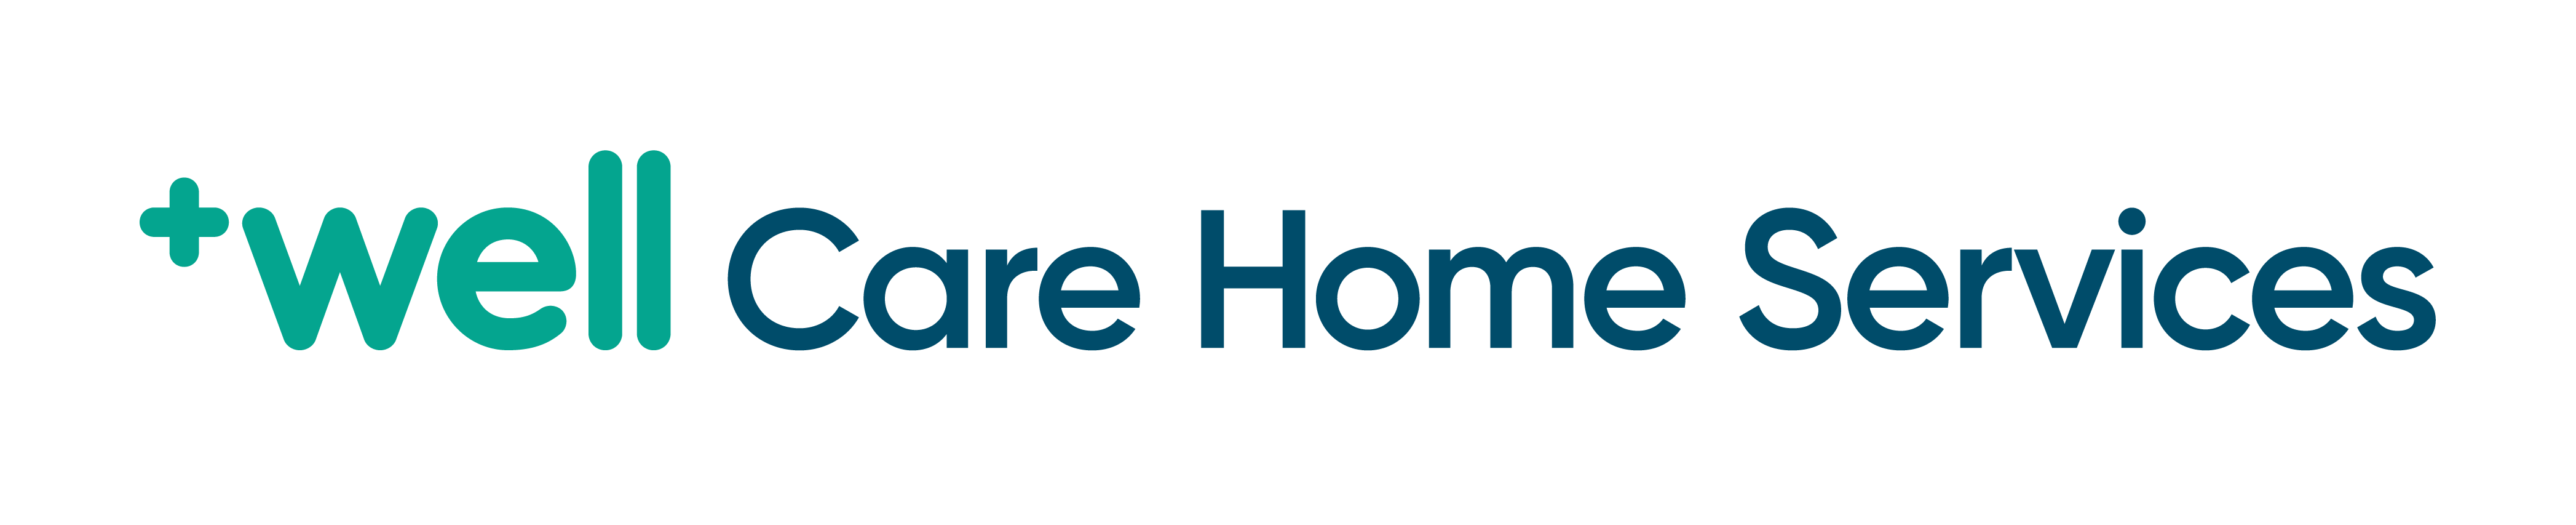 Well Care Home Services